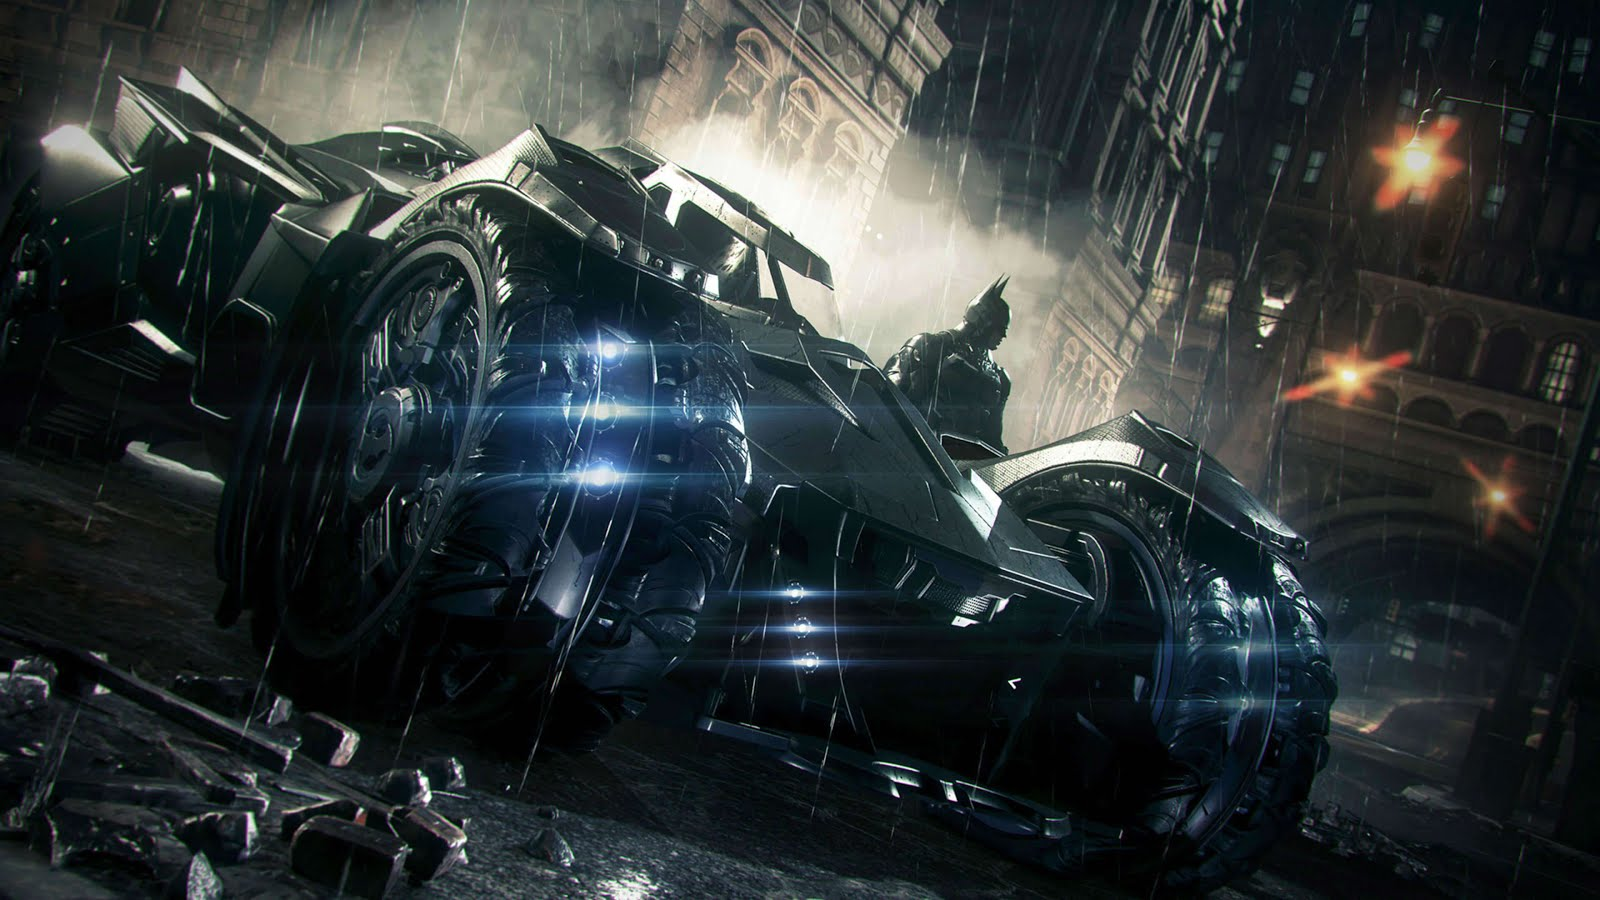 We Got It For You This Batman Arkham Knight Game Wallpaper Compatible To Yout PC Laptop Android IPhone BlackBerry Or Windows Phone And Here The List